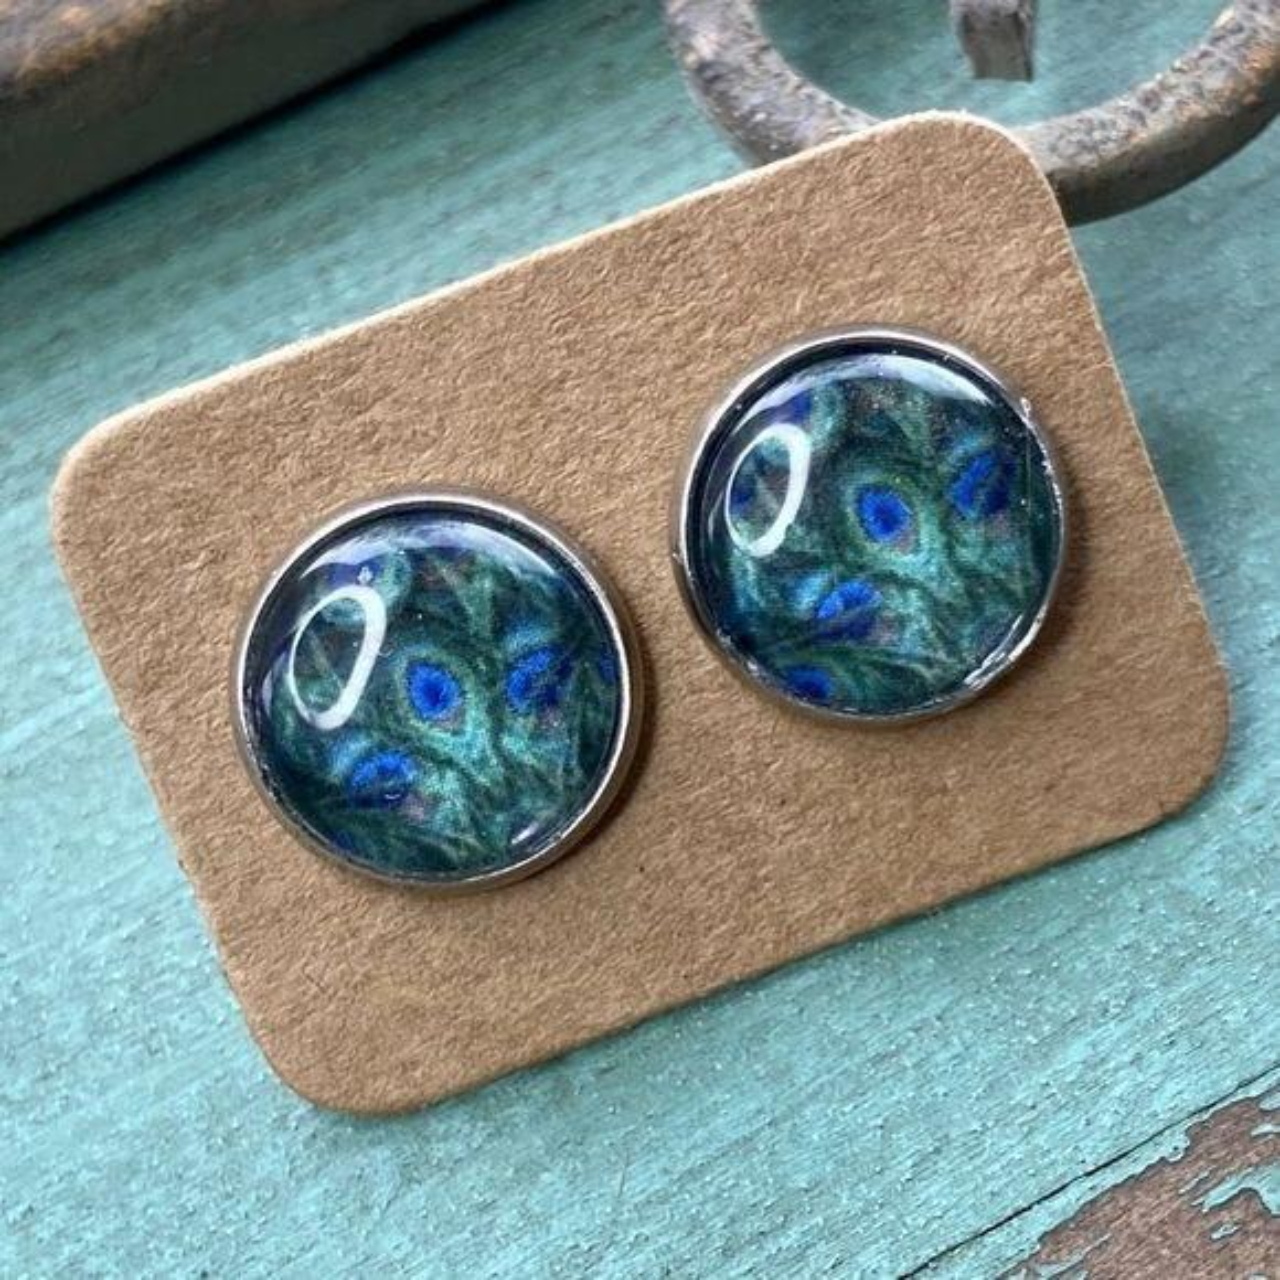 Product Image 1 - Cabochon stud earrings in iridescent